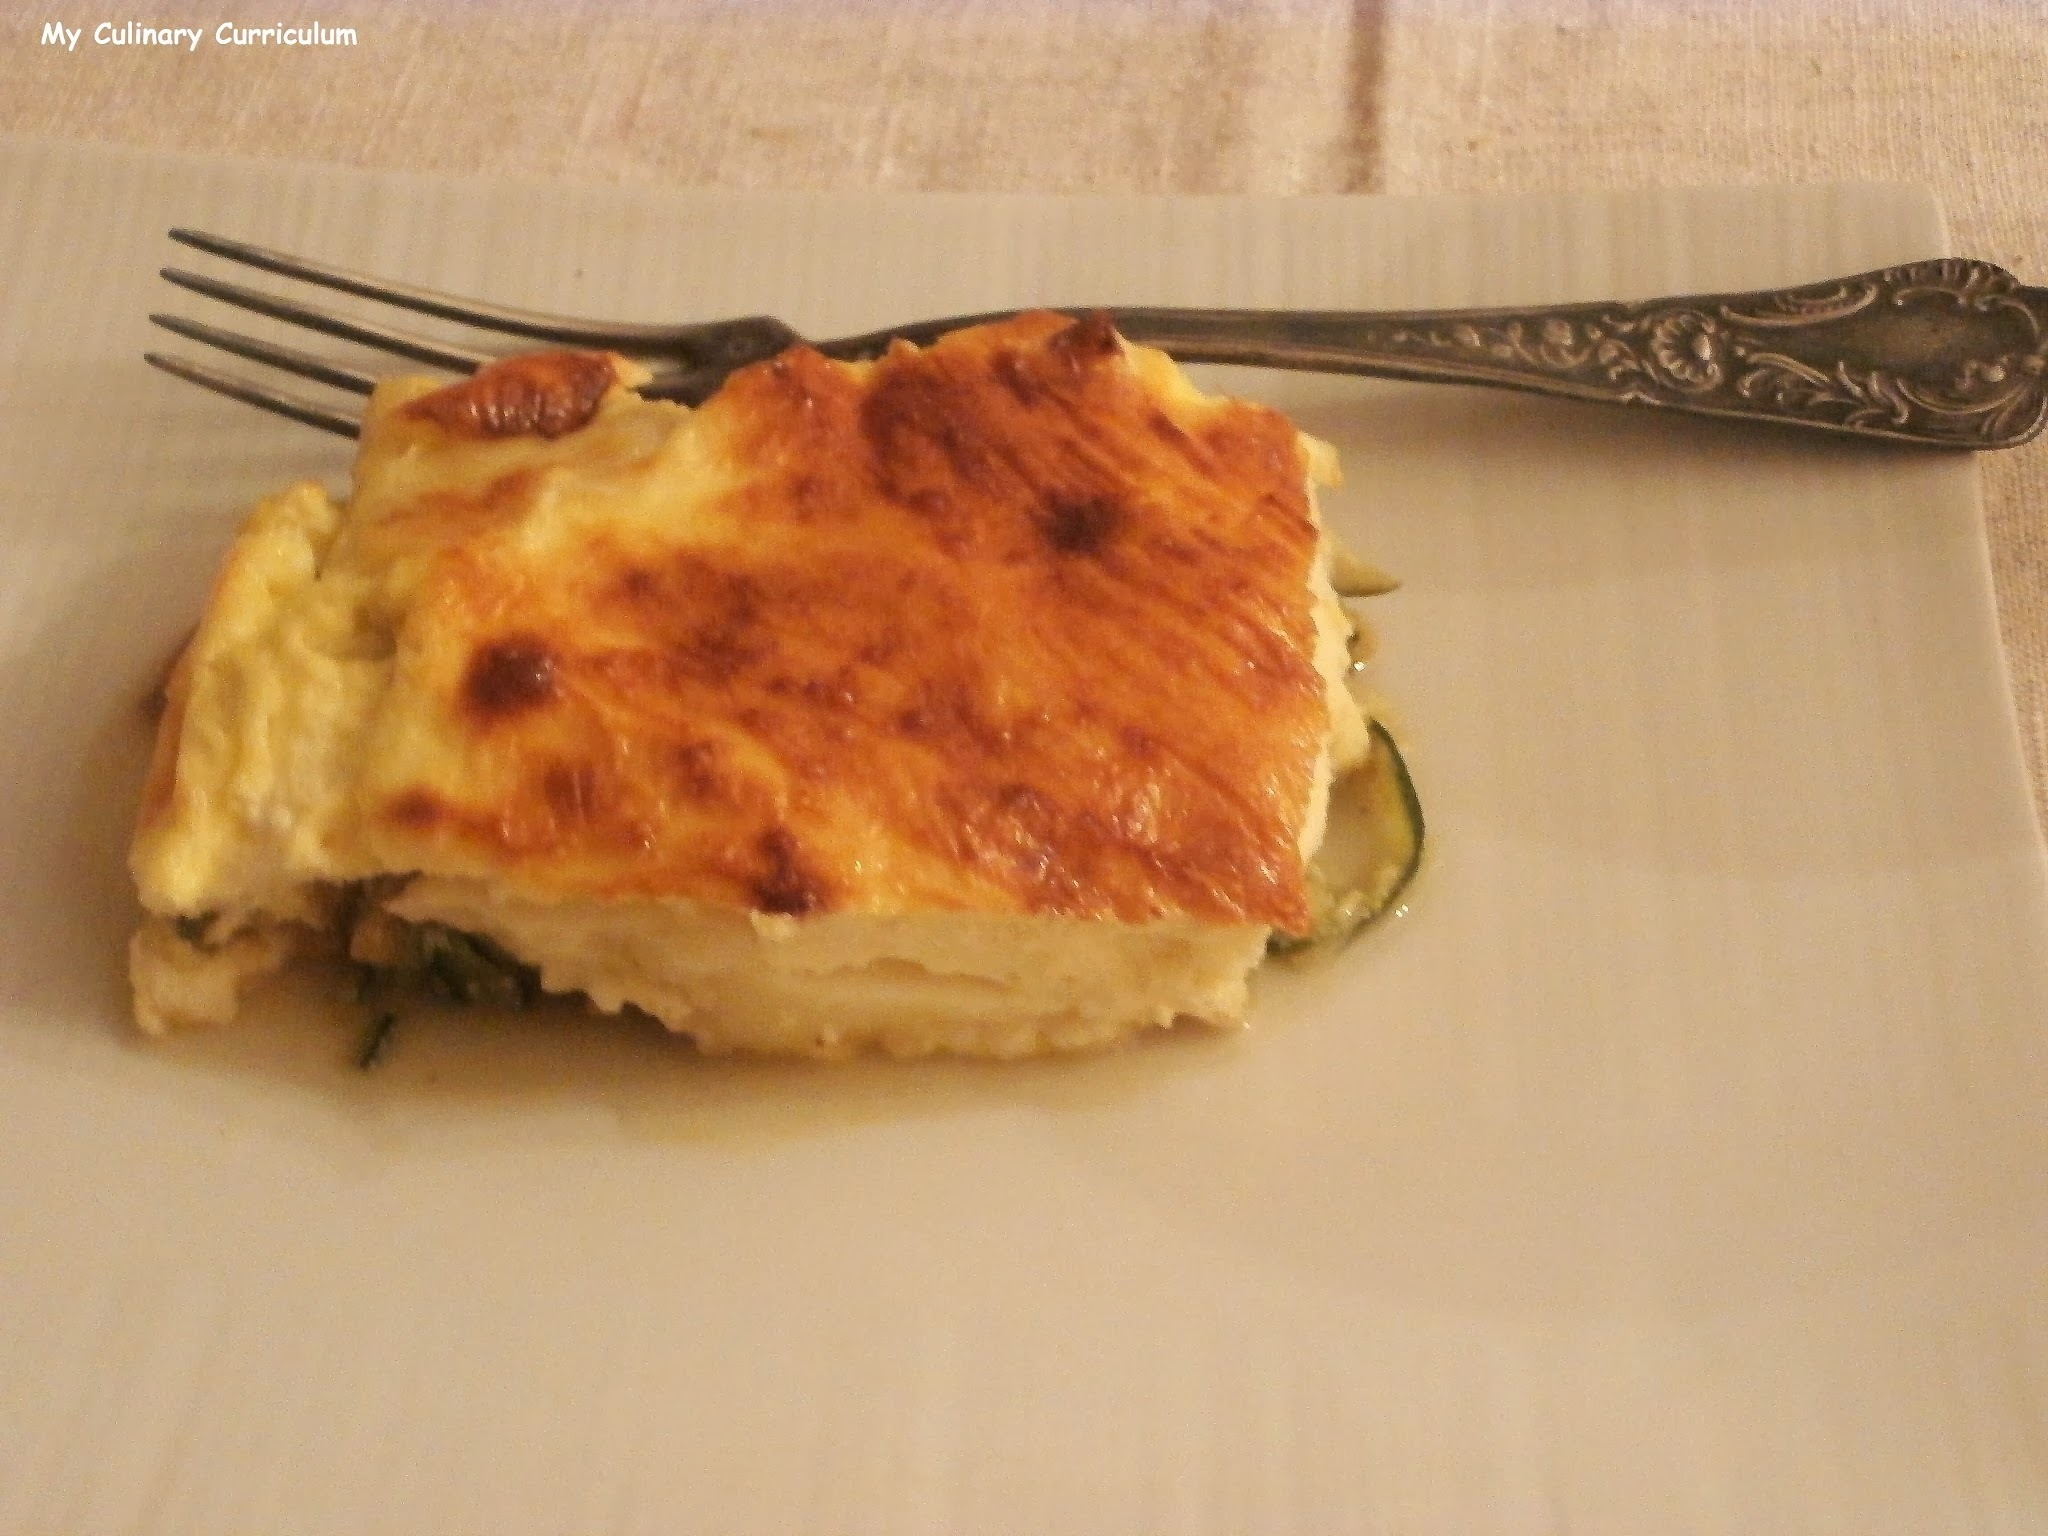 Gratin de courgettes et endives au camembert (Zucchini and endives gratin with Camembert)